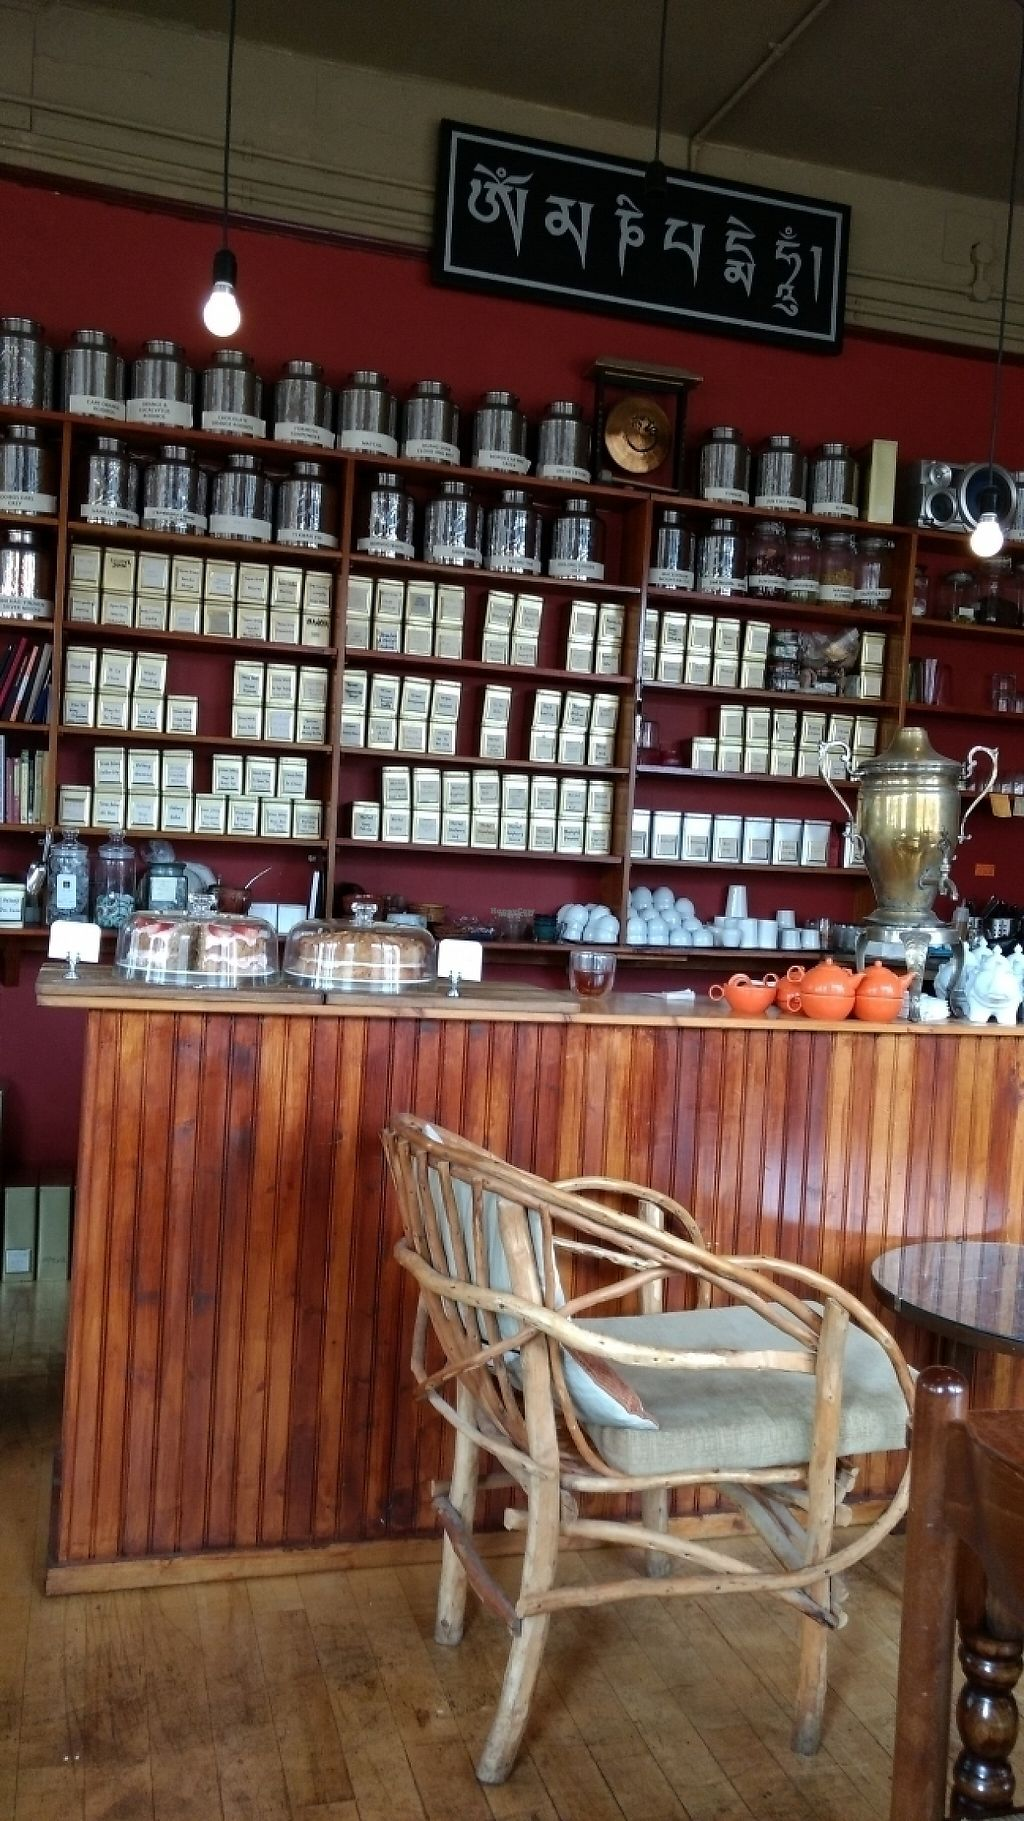 """Photo of Tea Sutra Teahouse  by <a href=""""/members/profile/craigmc"""">craigmc</a> <br/>tea selection <br/> March 30, 2017  - <a href='/contact/abuse/image/29138/242649'>Report</a>"""